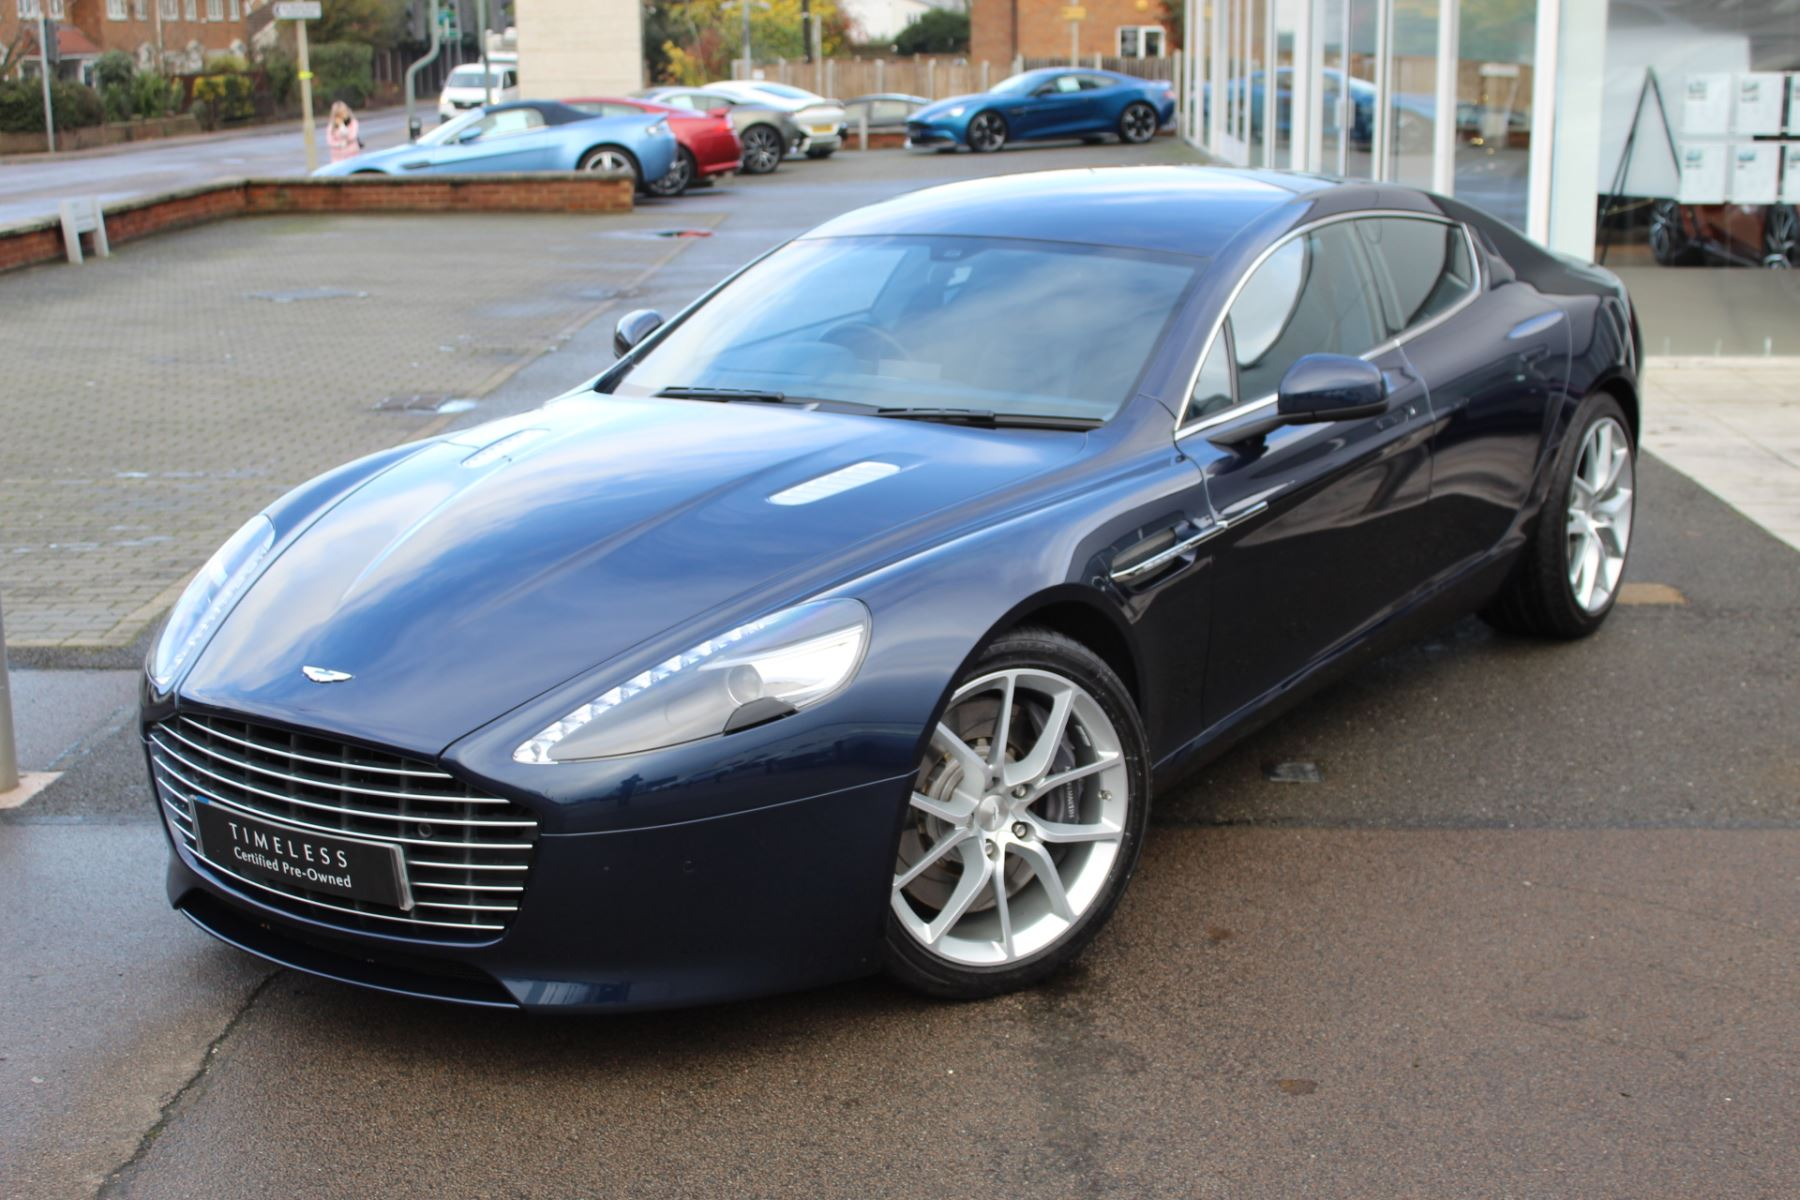 Aston Martin Rapide S V12 [552] 4dr Touchtronic III image 11